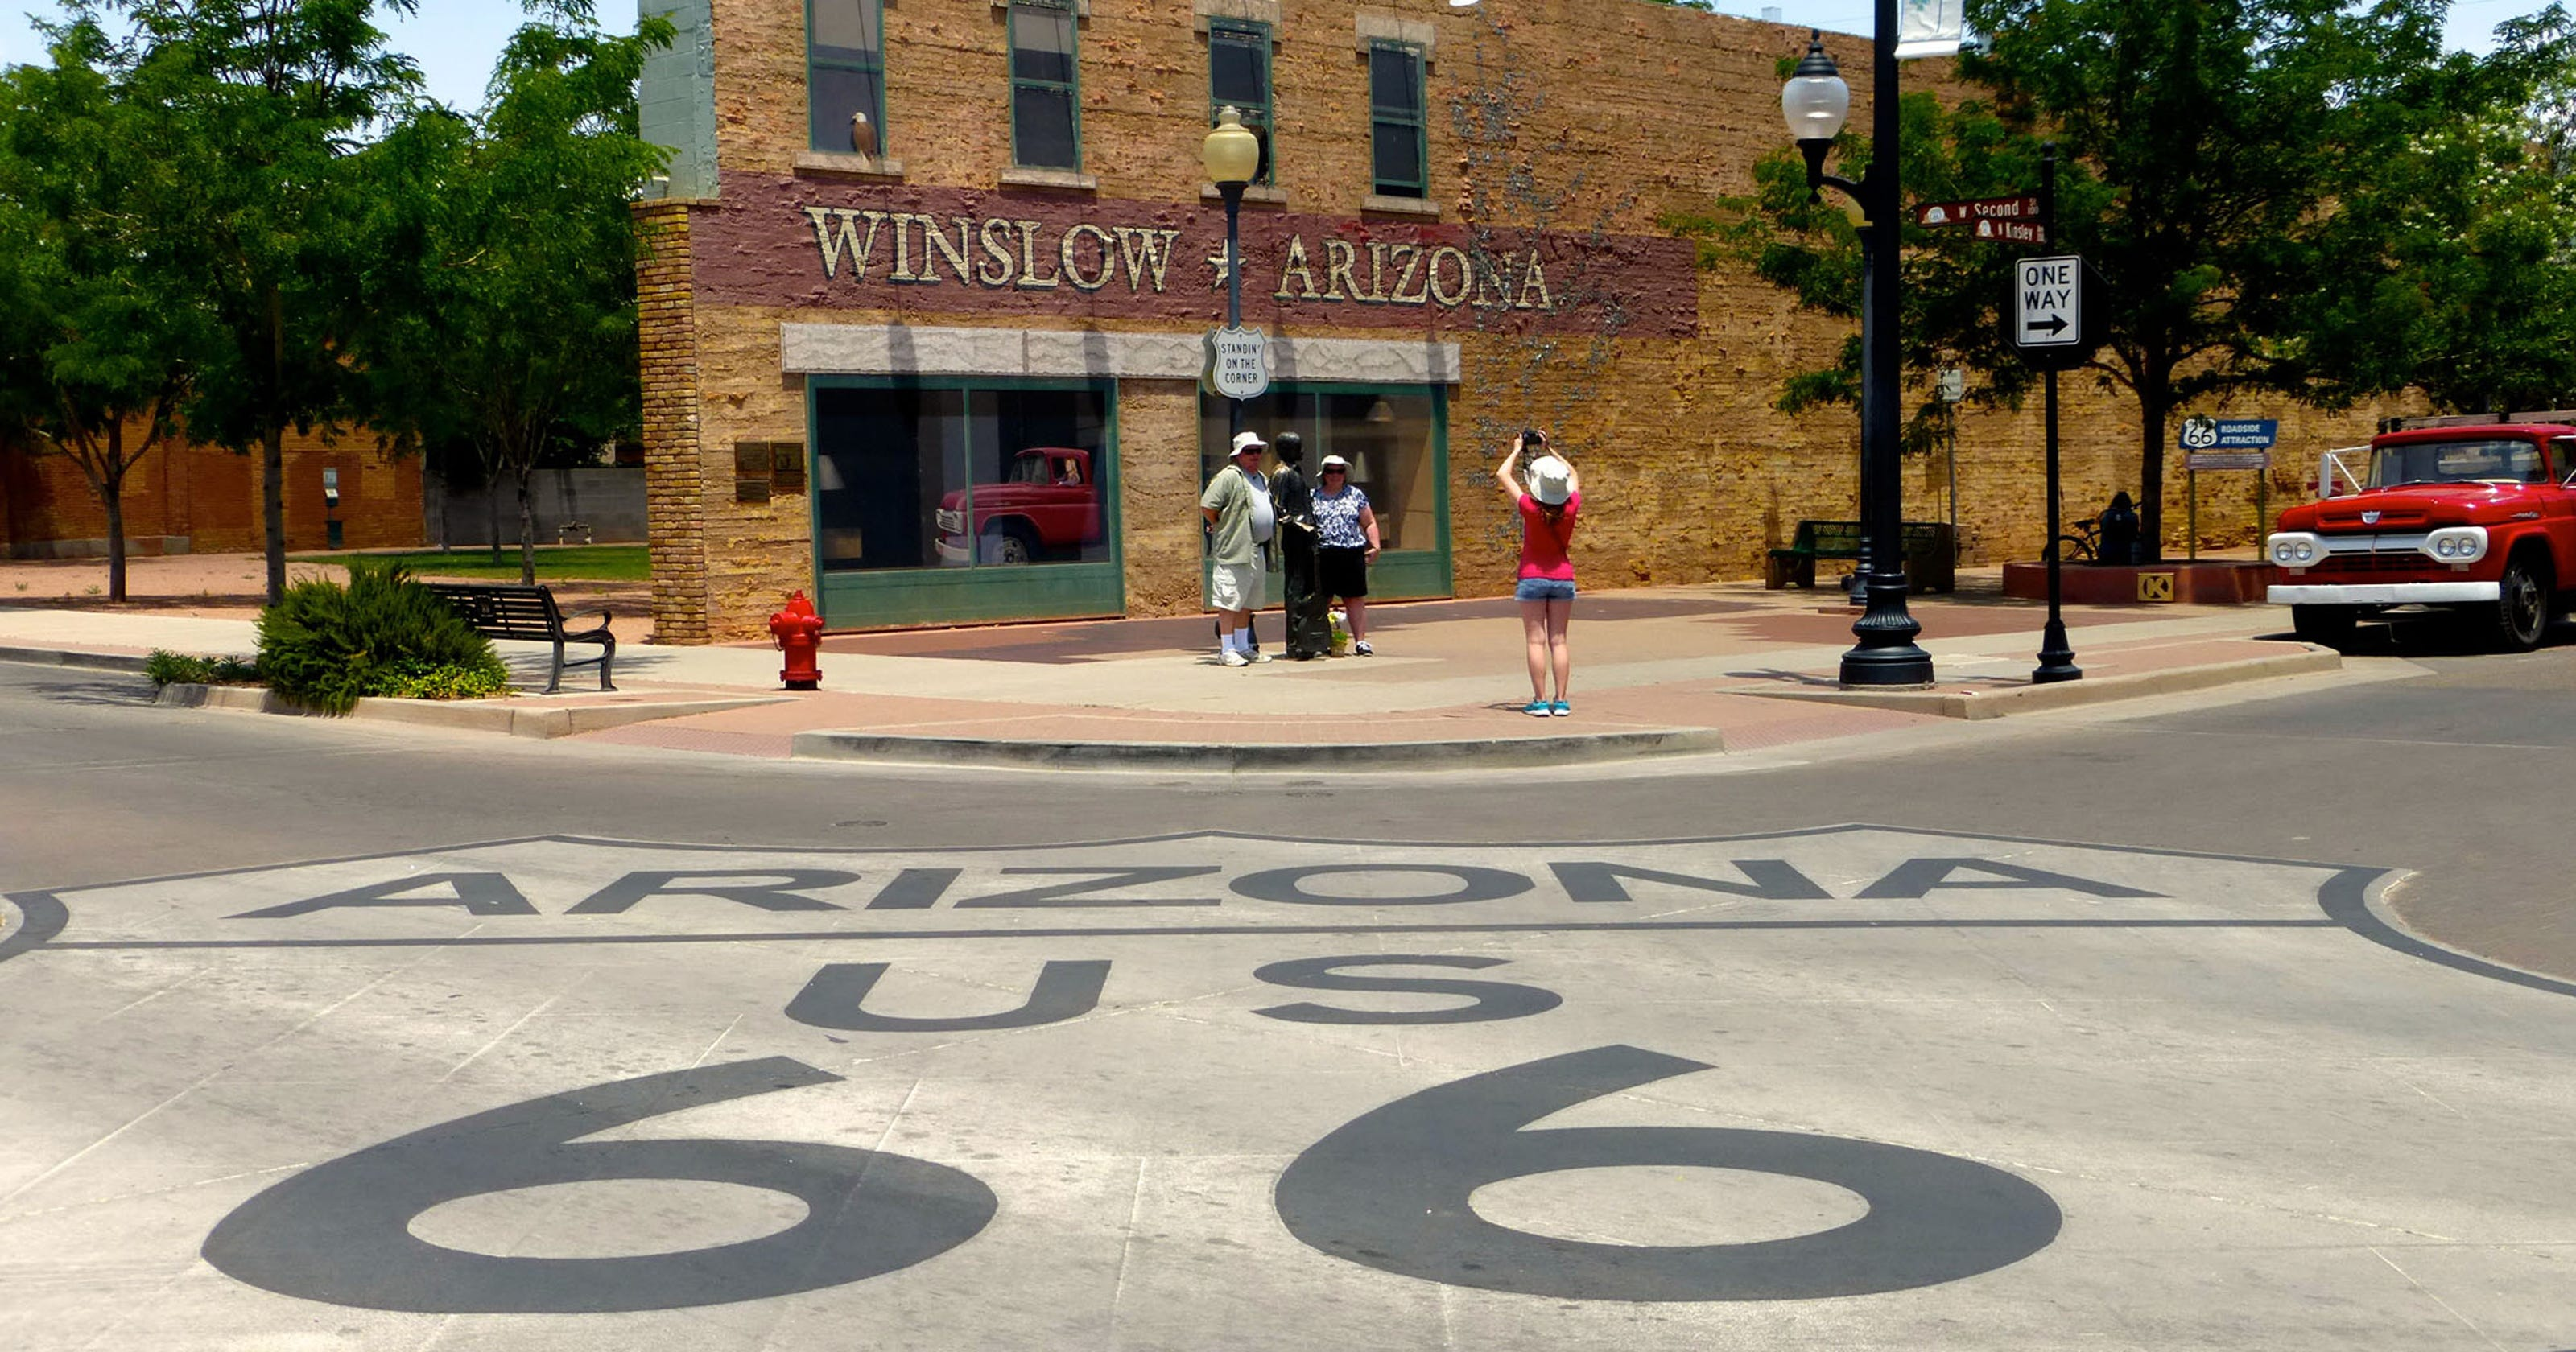 Map Of Old Route 66 Arizona.Arizona S Route 66 Favorite Spots Hidden Gems